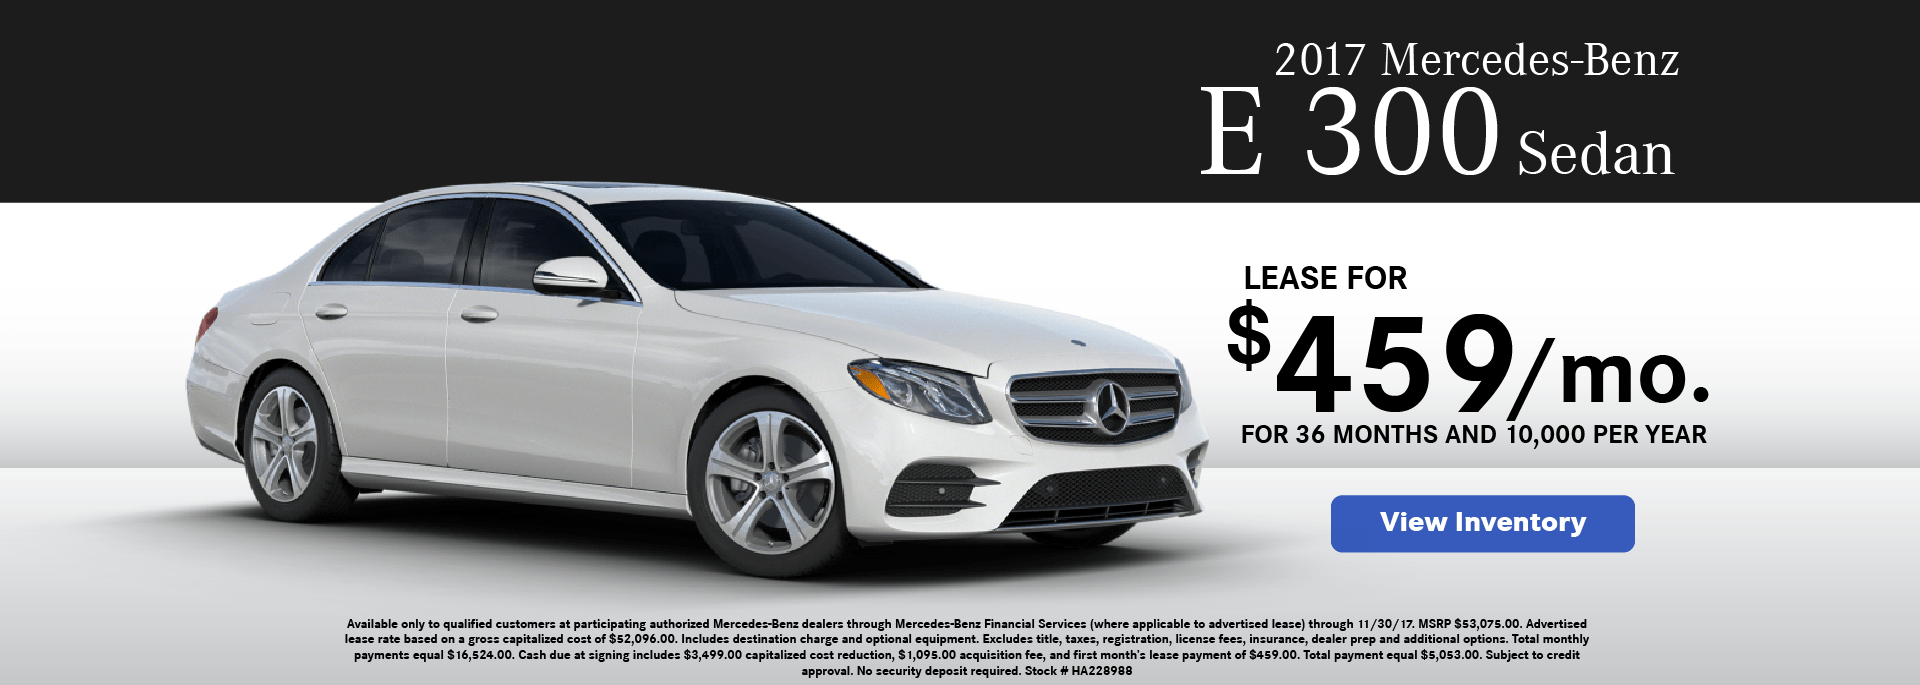 Mercedes benz dealership coral gables fl used cars for Mercedes benz special deals